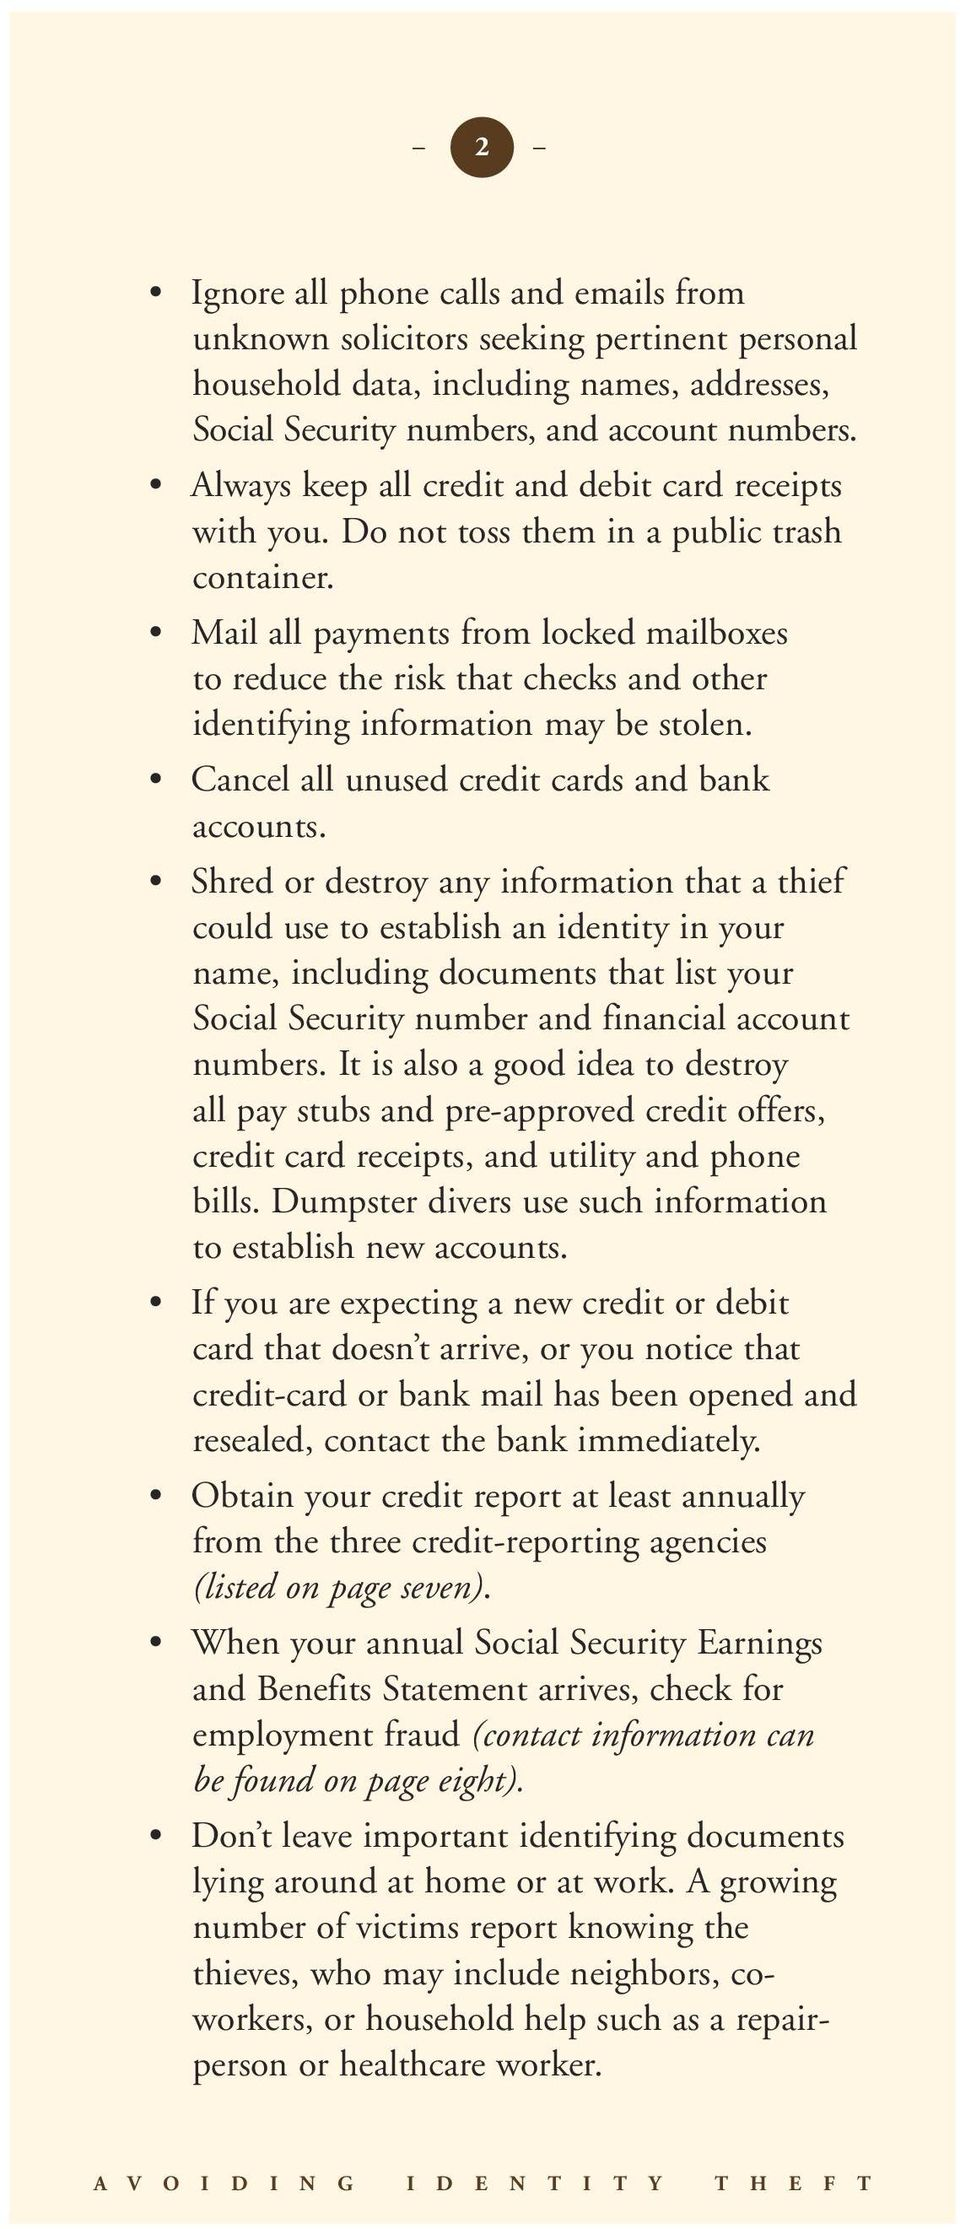 Mail all payments from locked mailboxes to reduce the risk that checks and other identifying information may be stolen. Cancel all unused credit cards and bank accounts.